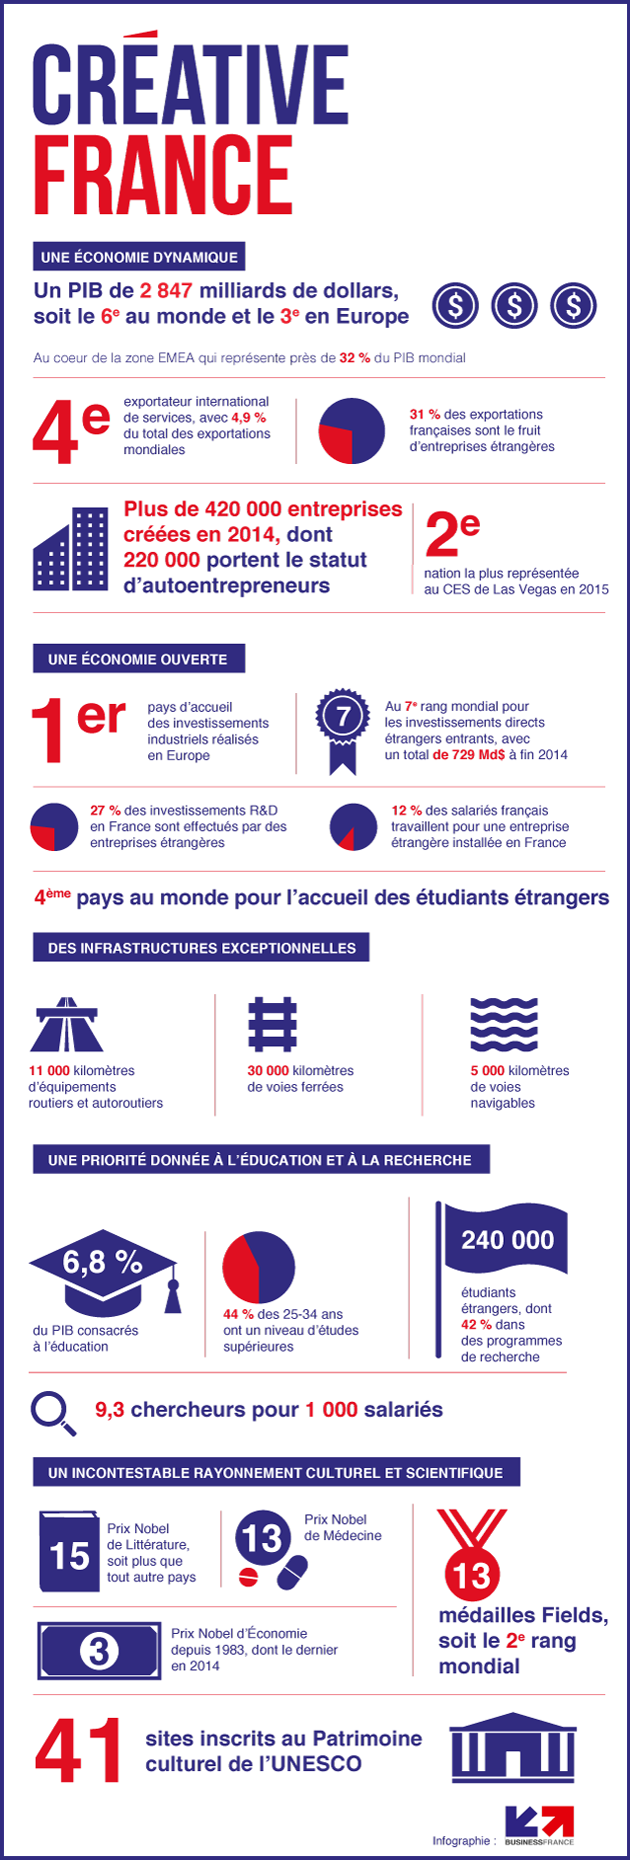 Infographie Créative France - PNG